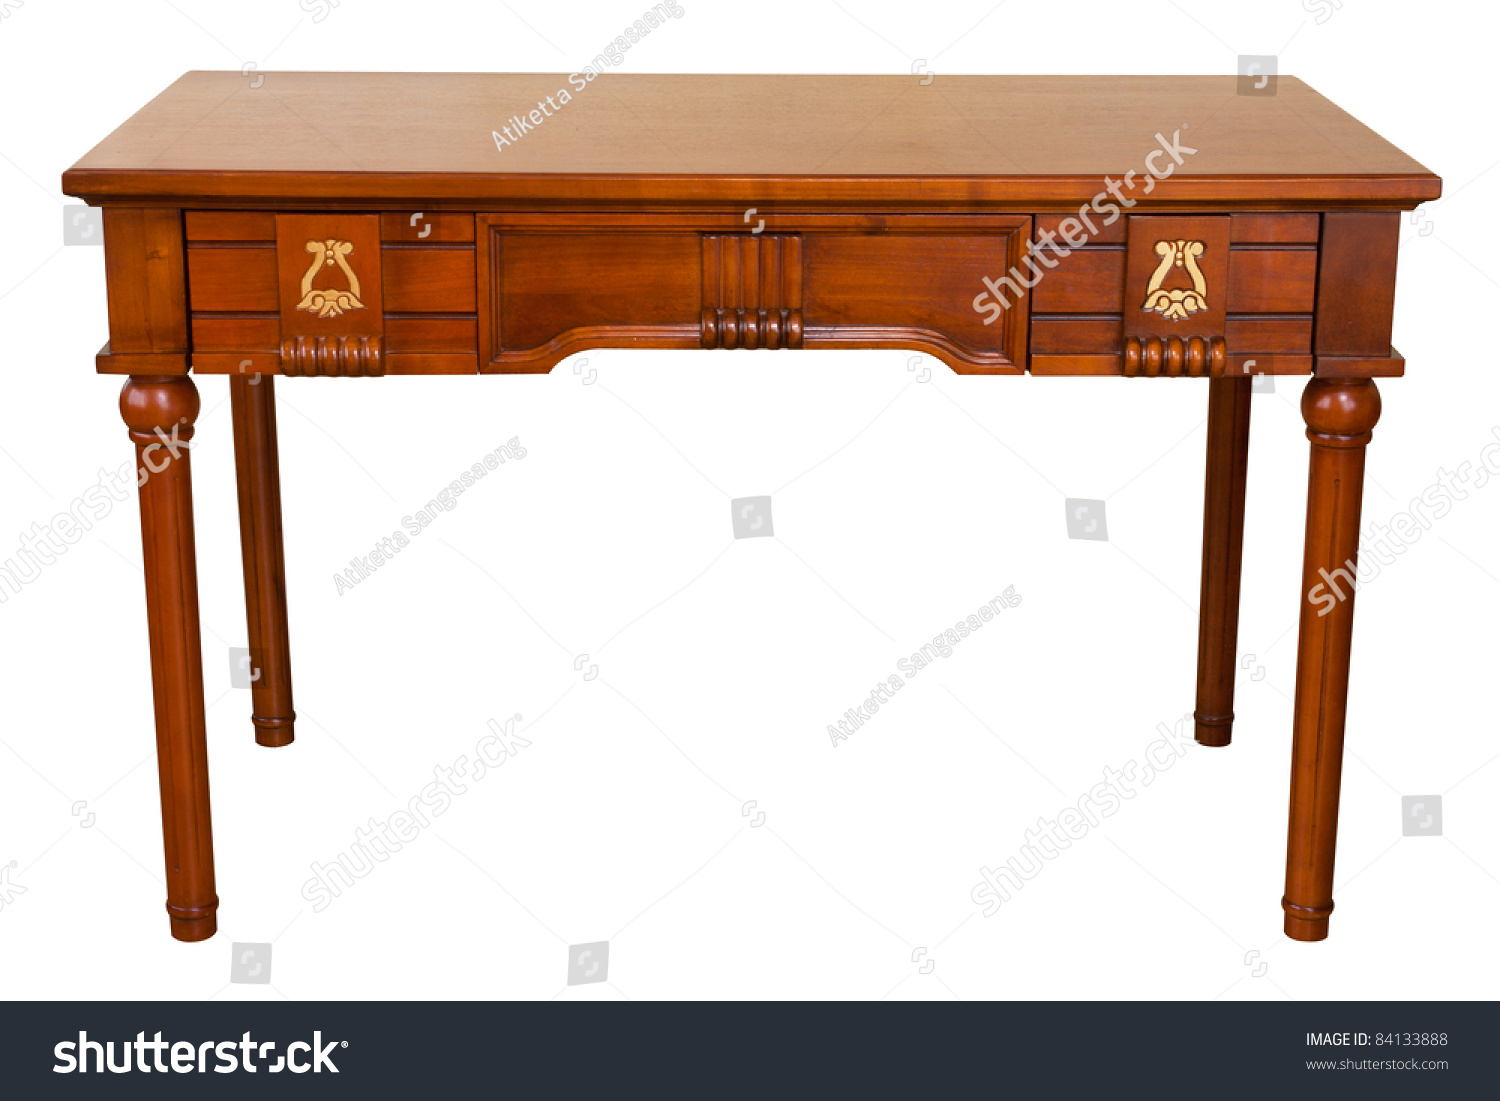 Vintage Table Isolated On White Path Stock Photo 84133888 Shutterstock